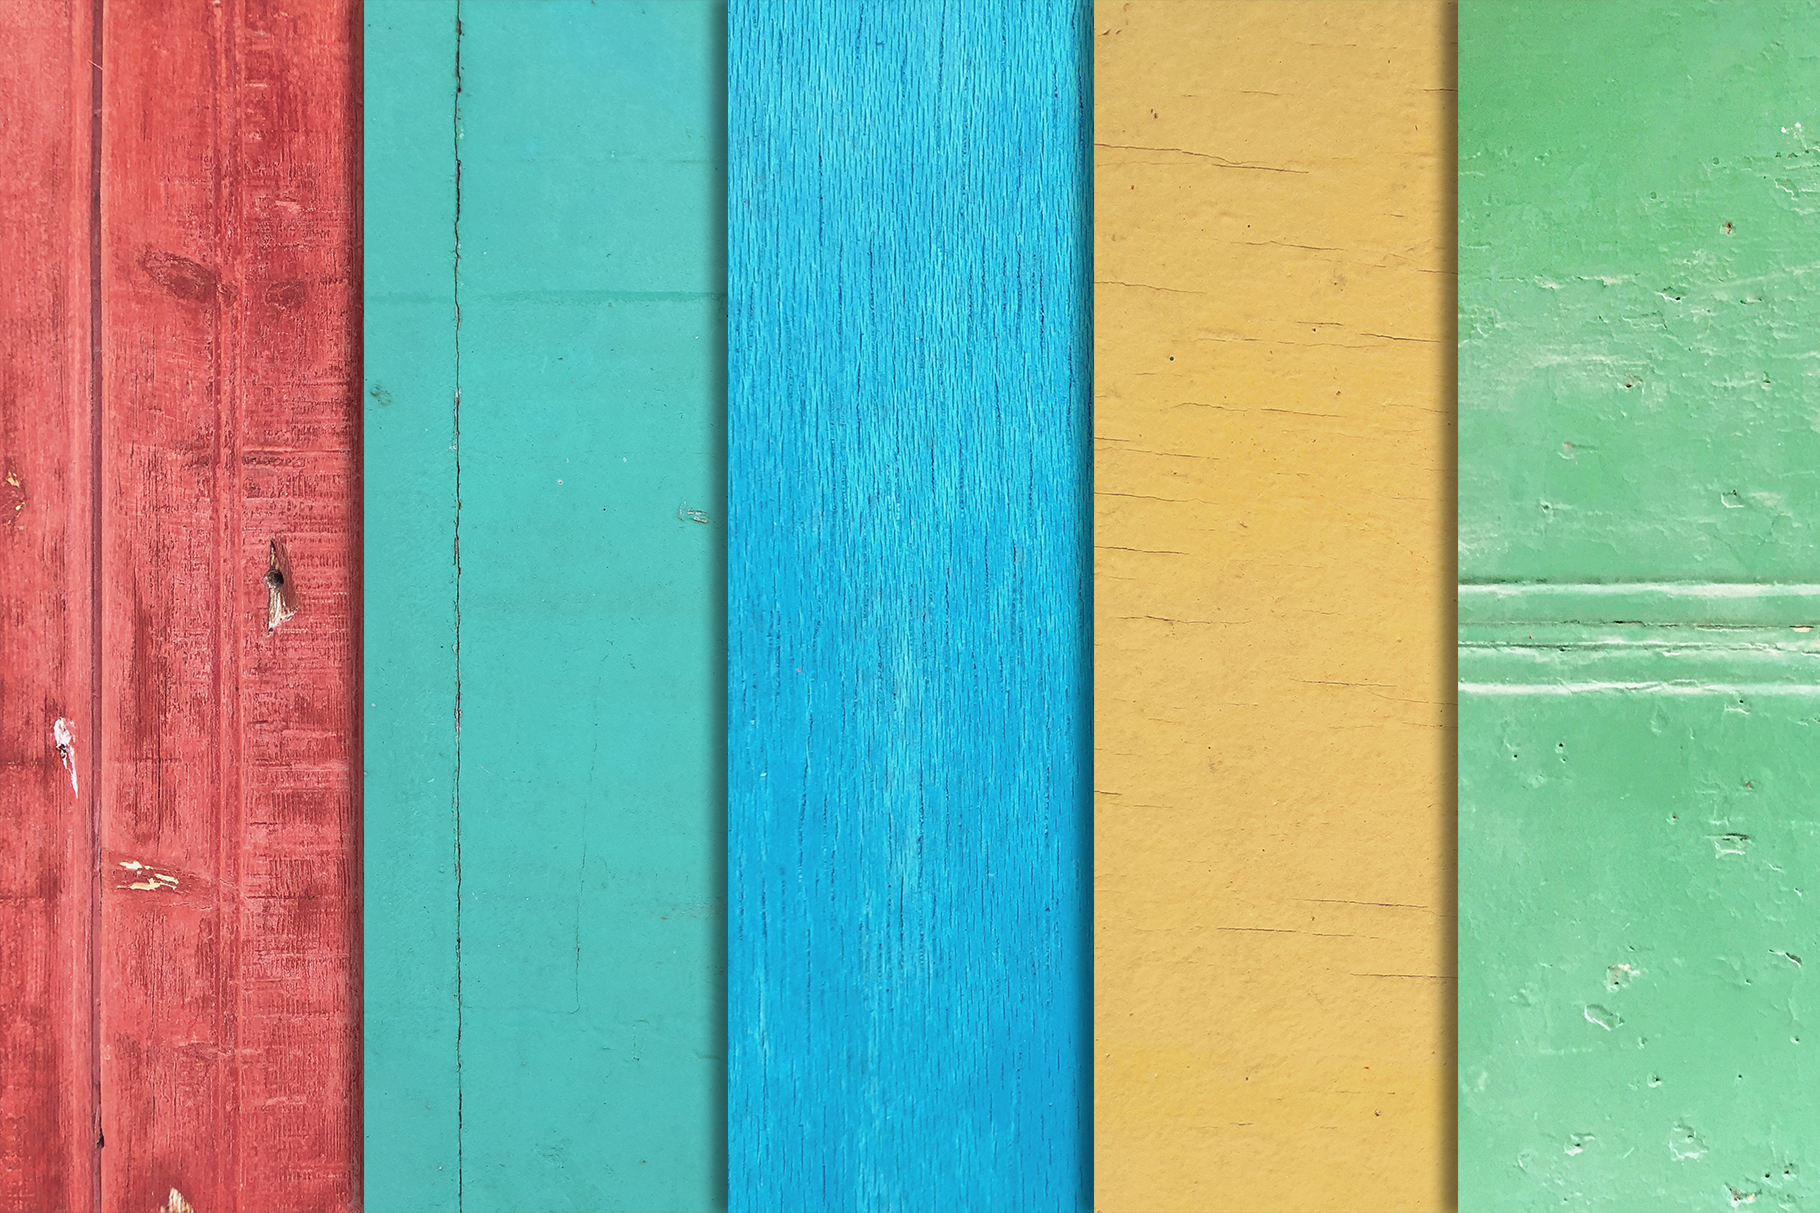 Color Wood Textures x10 example image 3